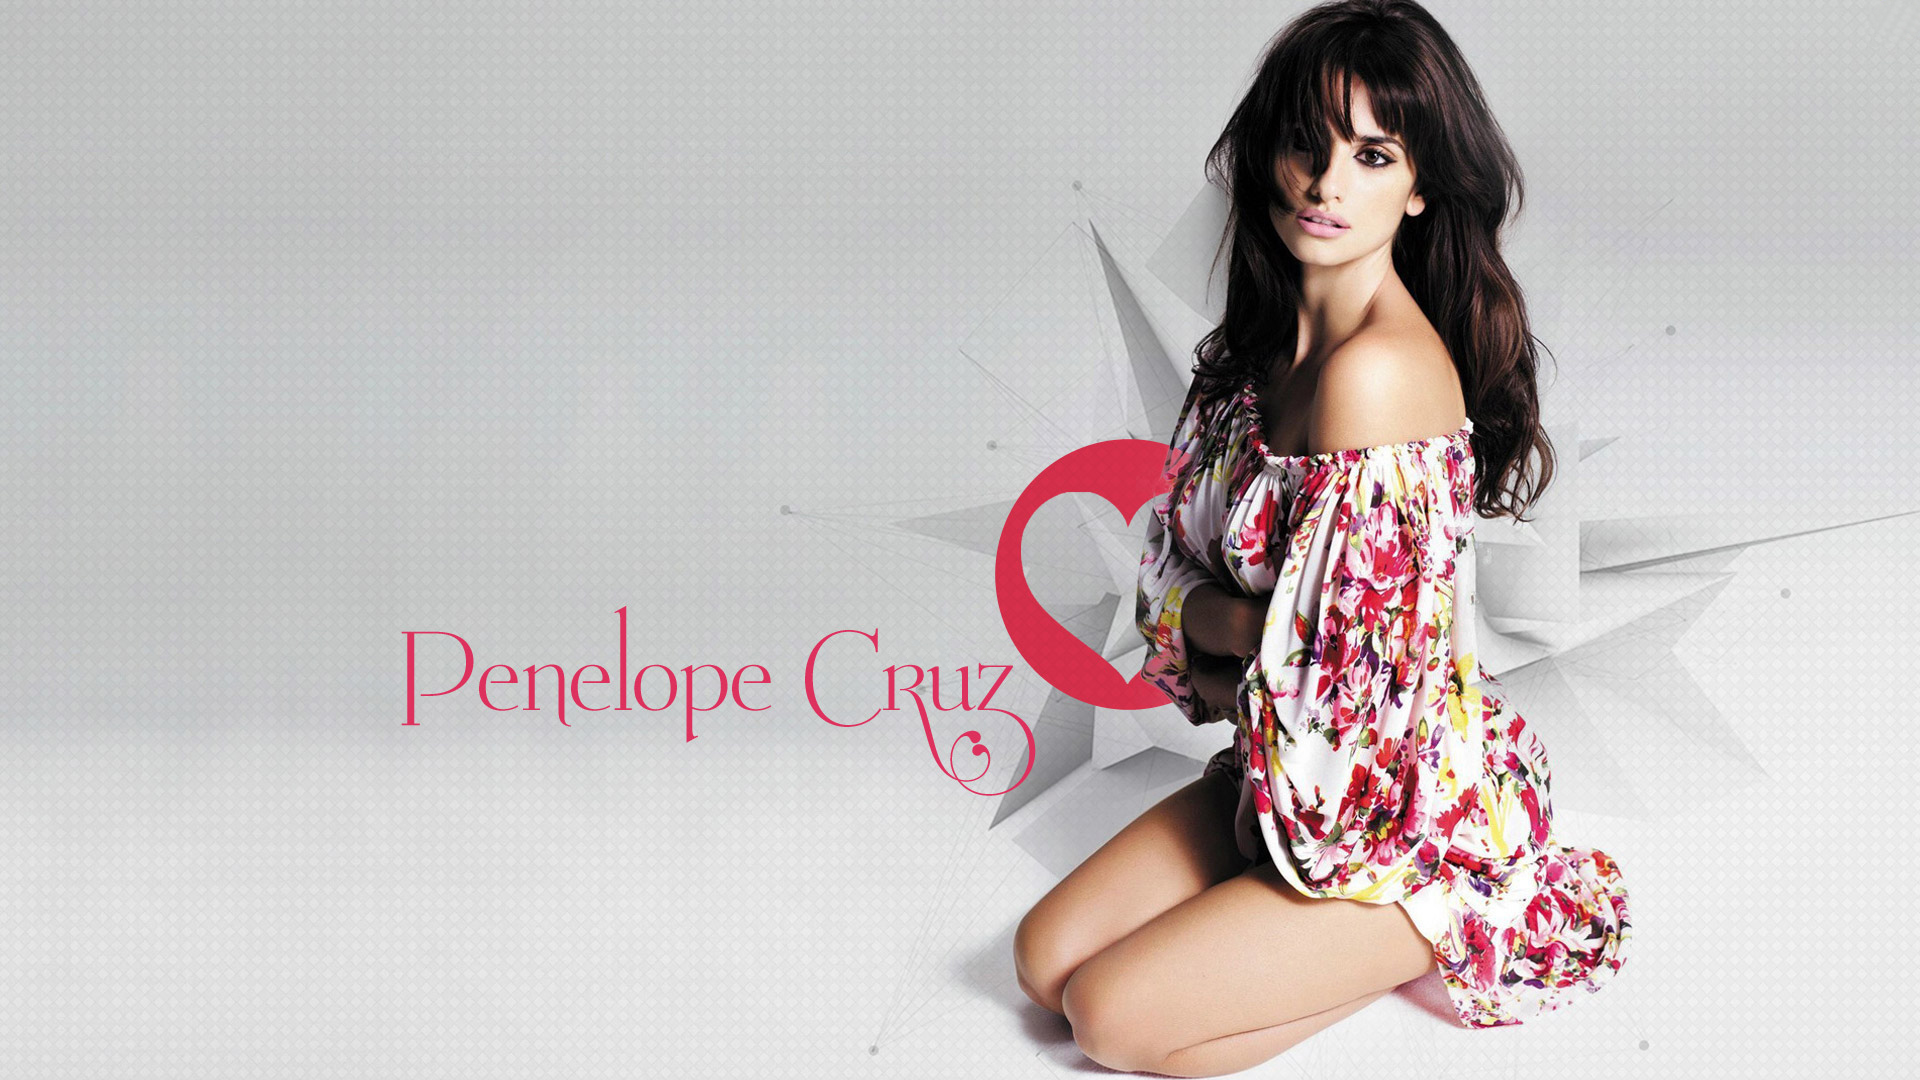 Naked Pictures Of Penelope Cruz 51